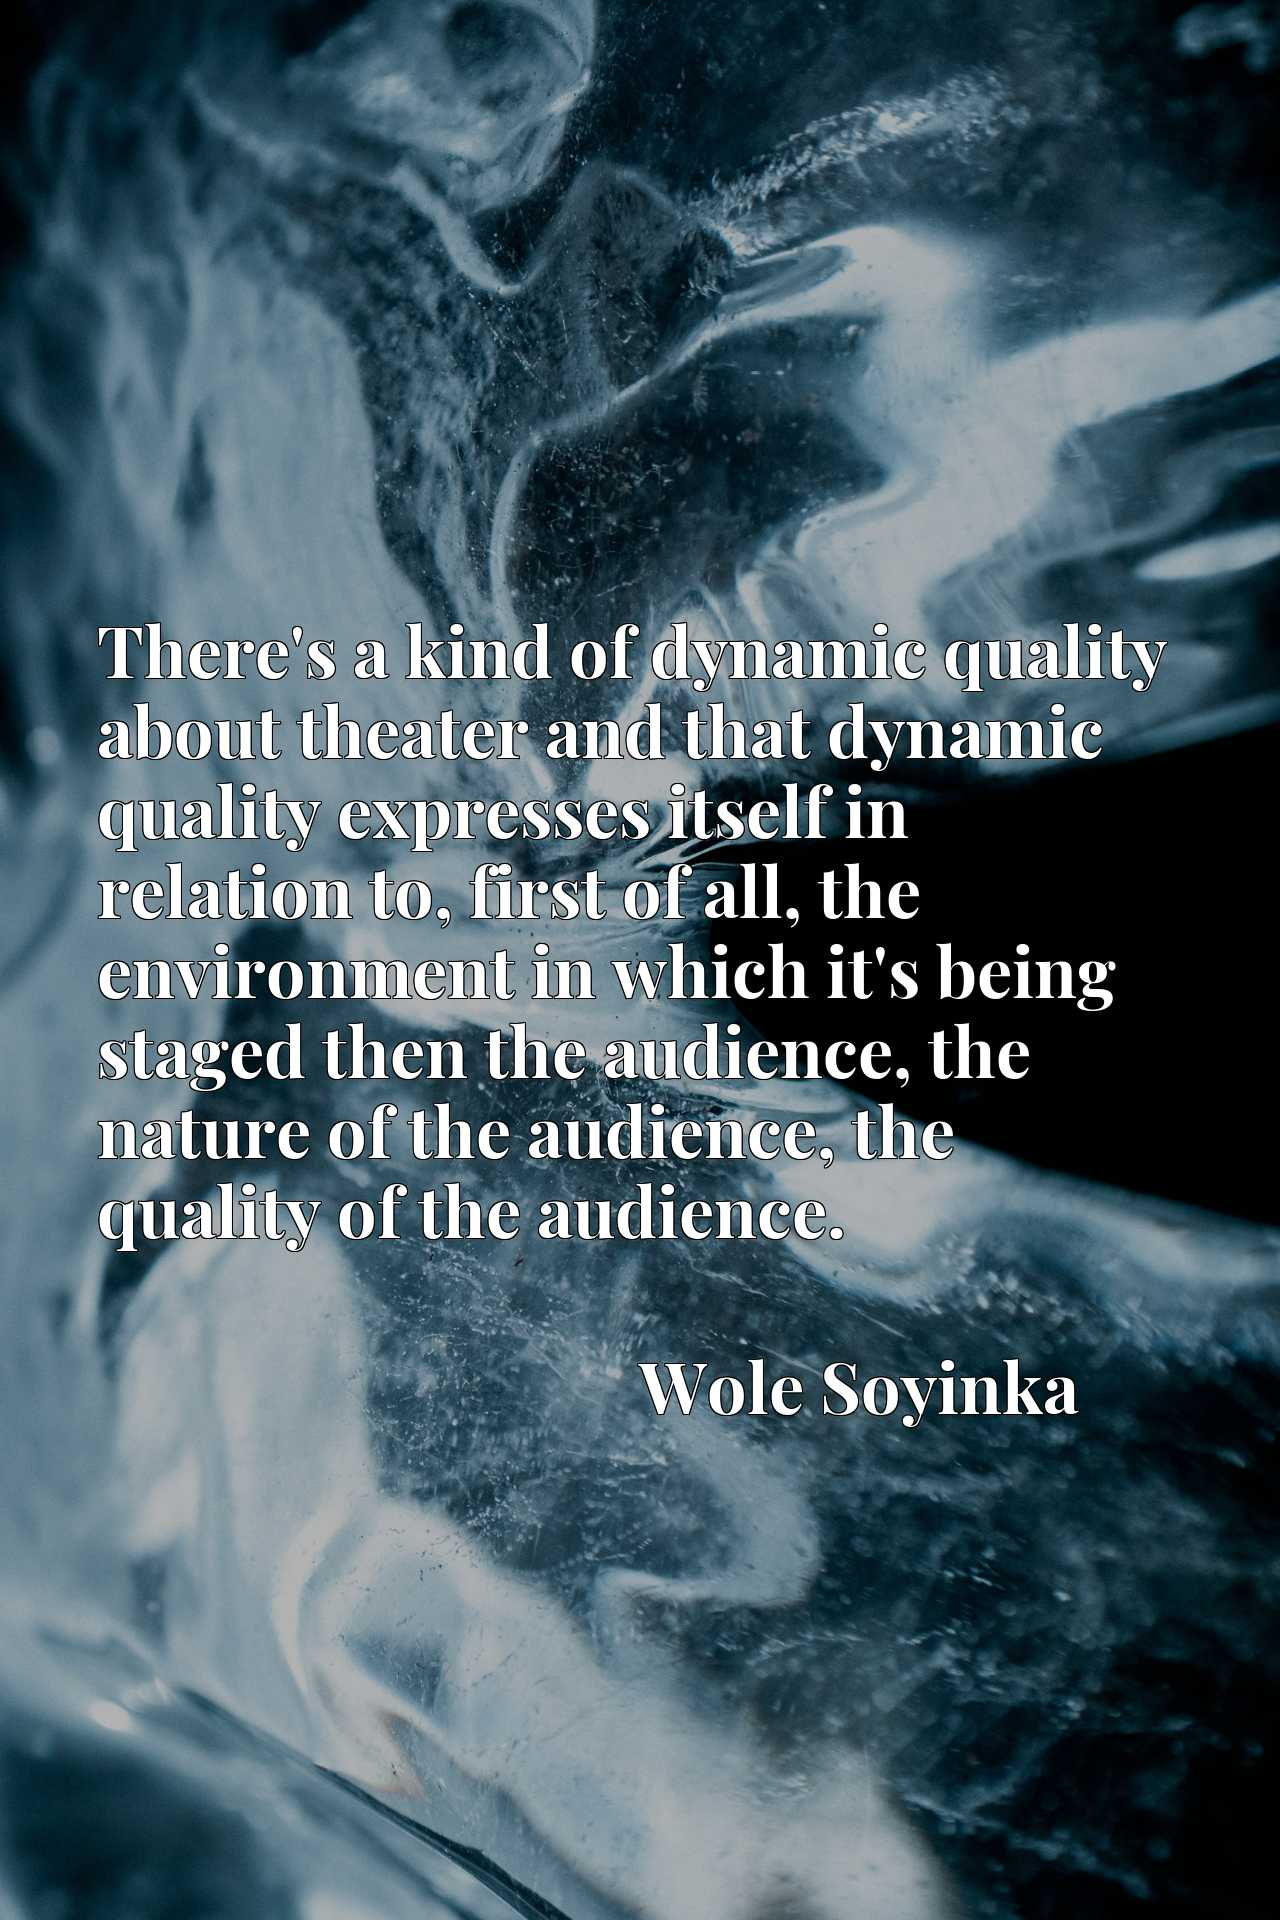 There's a kind of dynamic quality about theater and that dynamic quality expresses itself in relation to, first of all, the environment in which it's being staged then the audience, the nature of the audience, the quality of the audience.